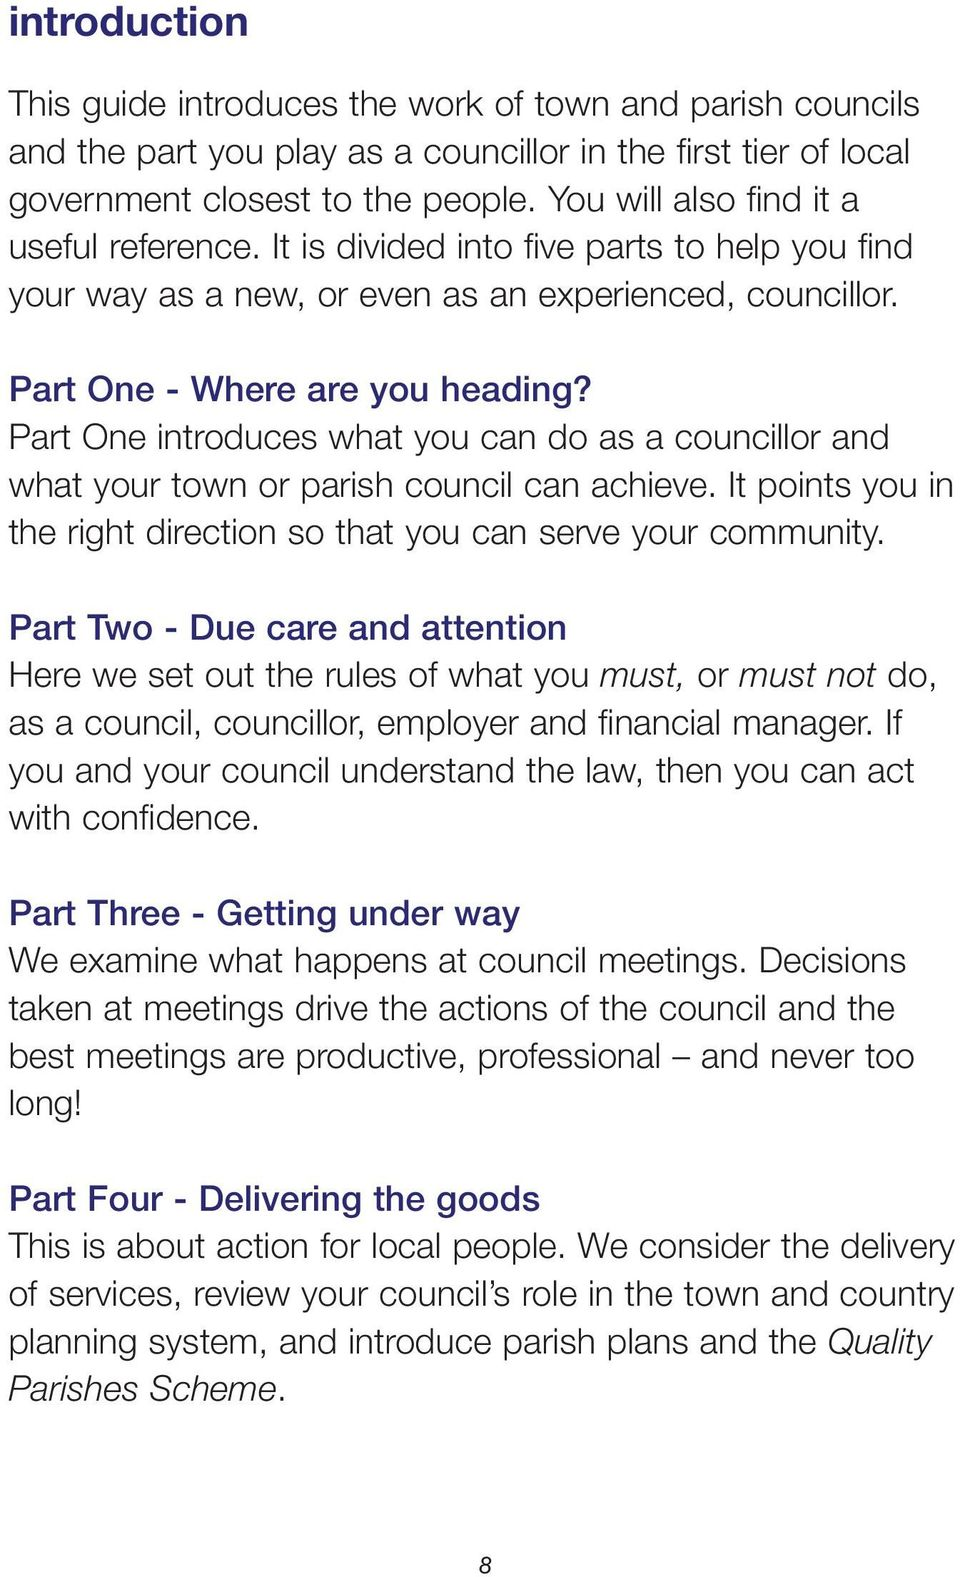 Part One introduces what you can do as a councillor and what your town or parish council can achieve. It points you in the right direction so that you can serve your community.